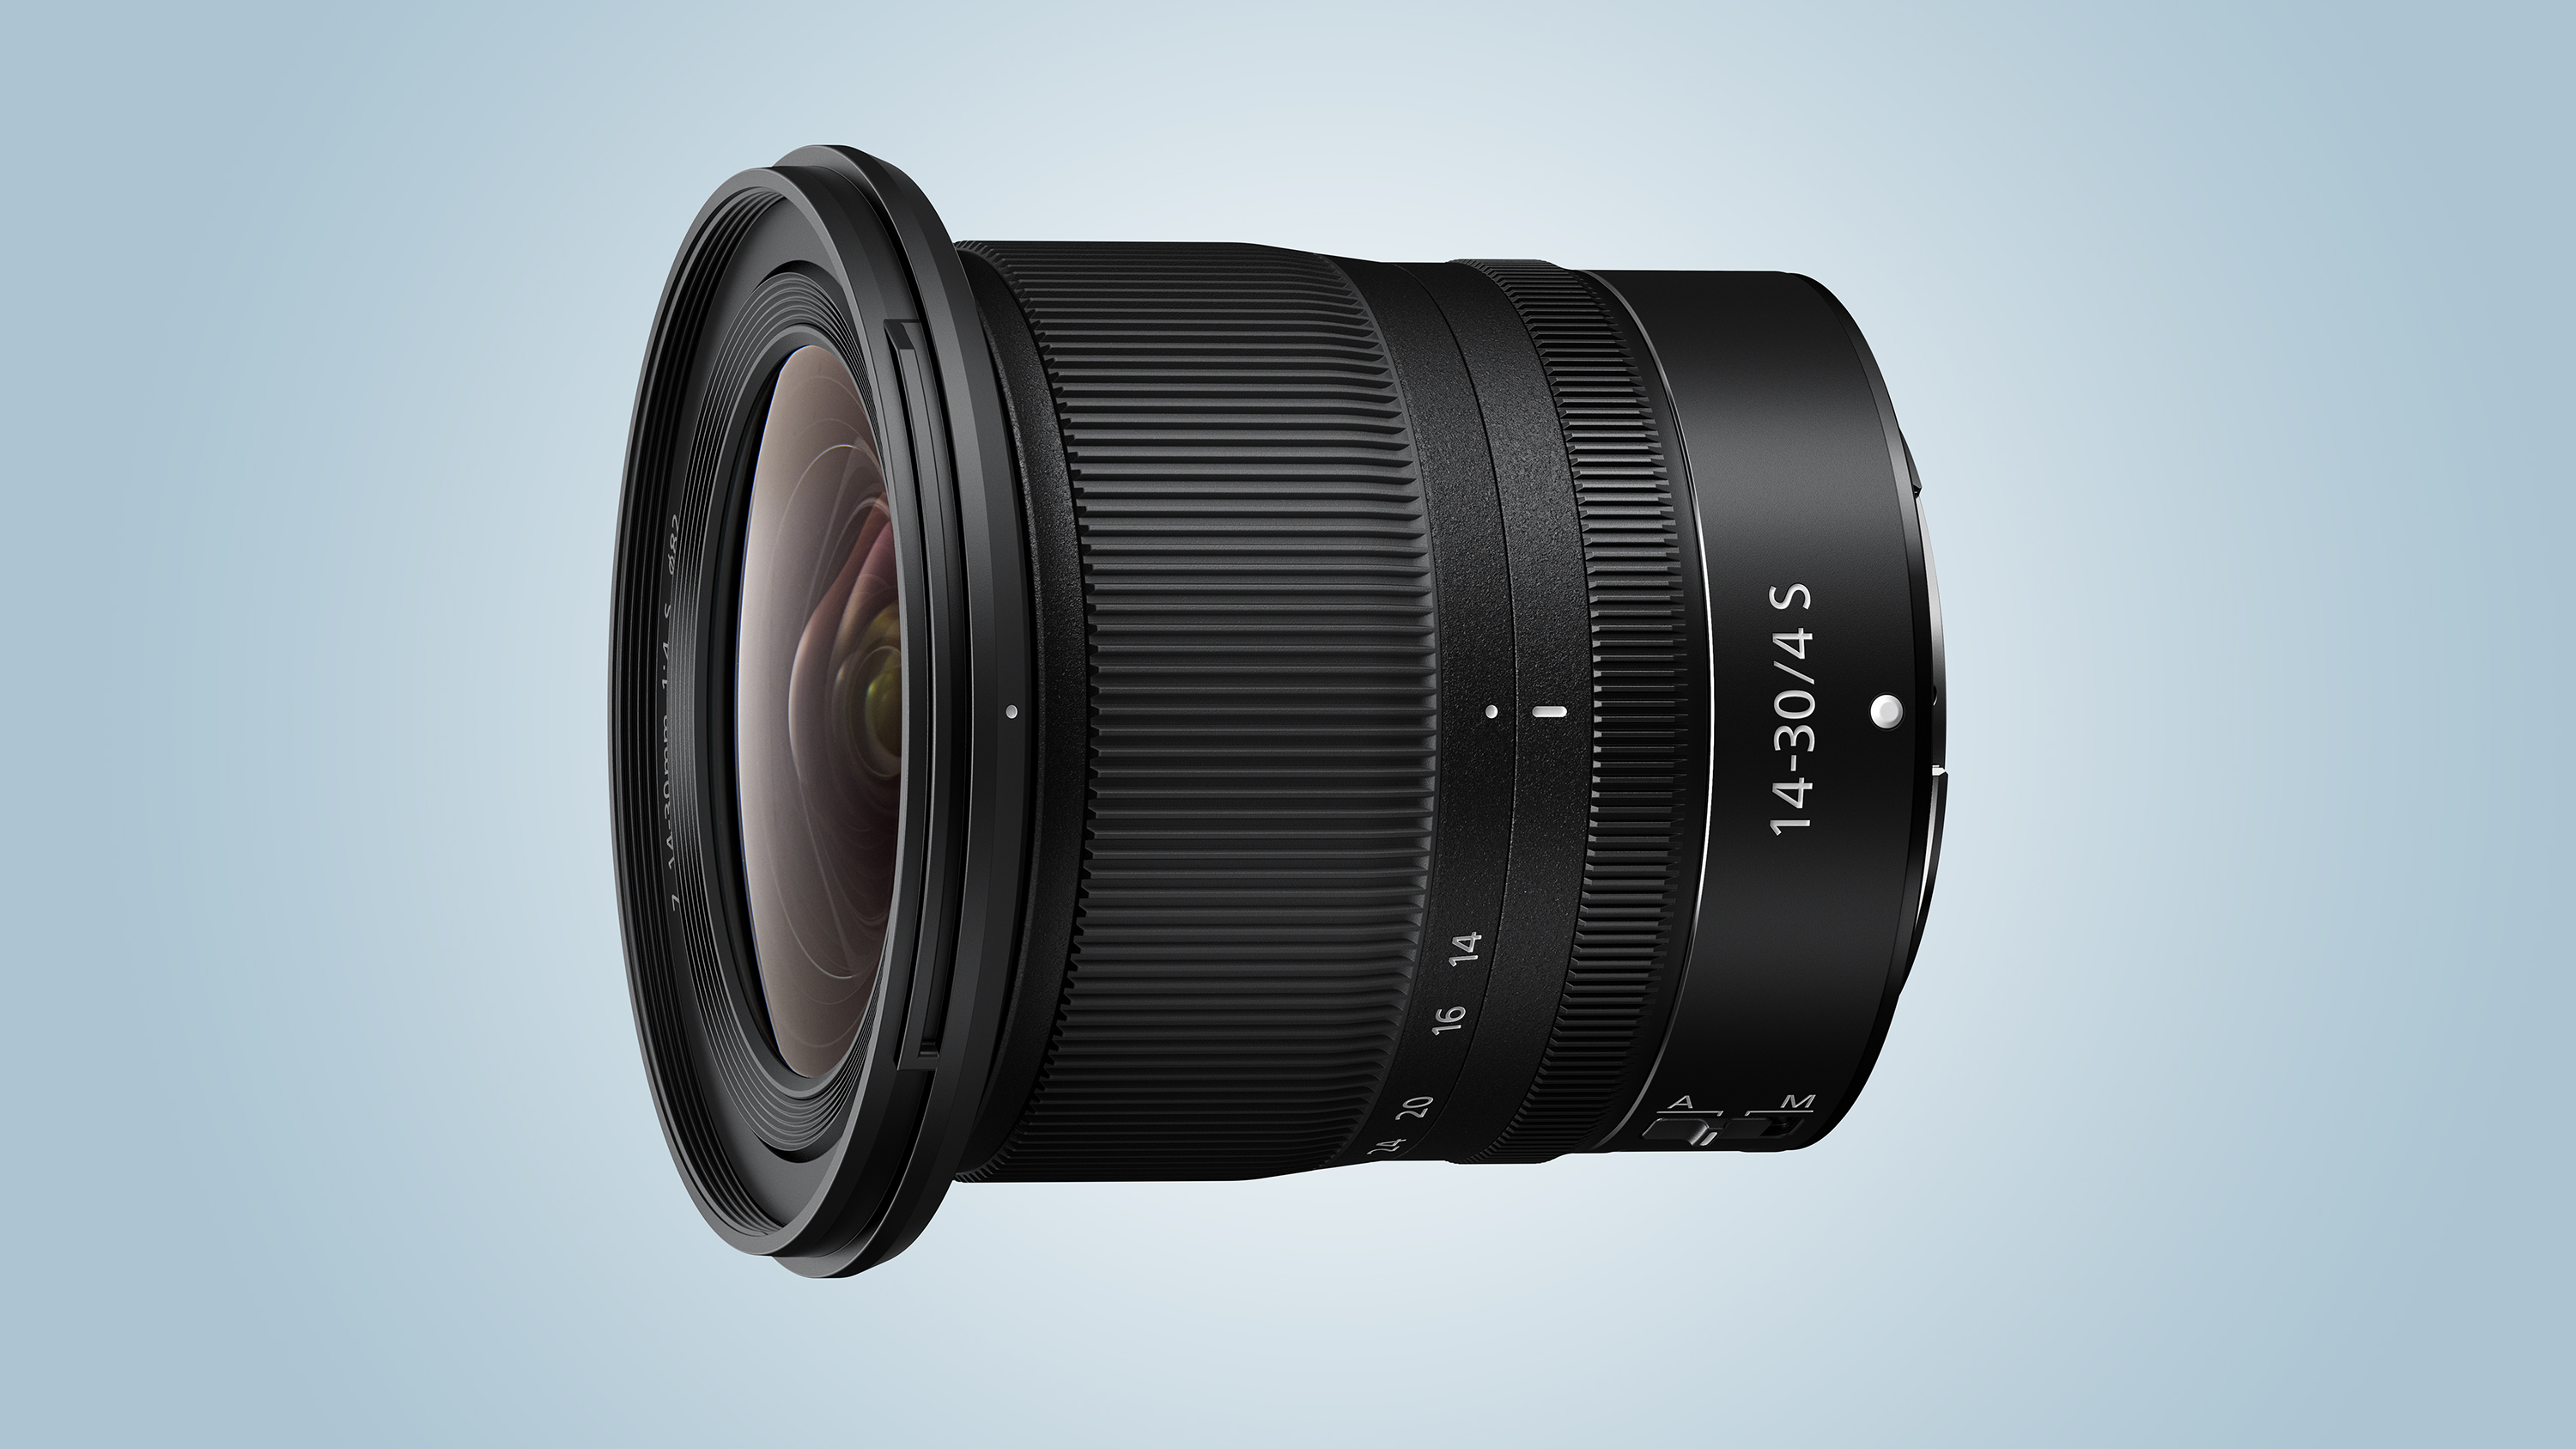 Nikon launches ultra-wide 14-30mm f/4 for its Z6 and Z7 cameras